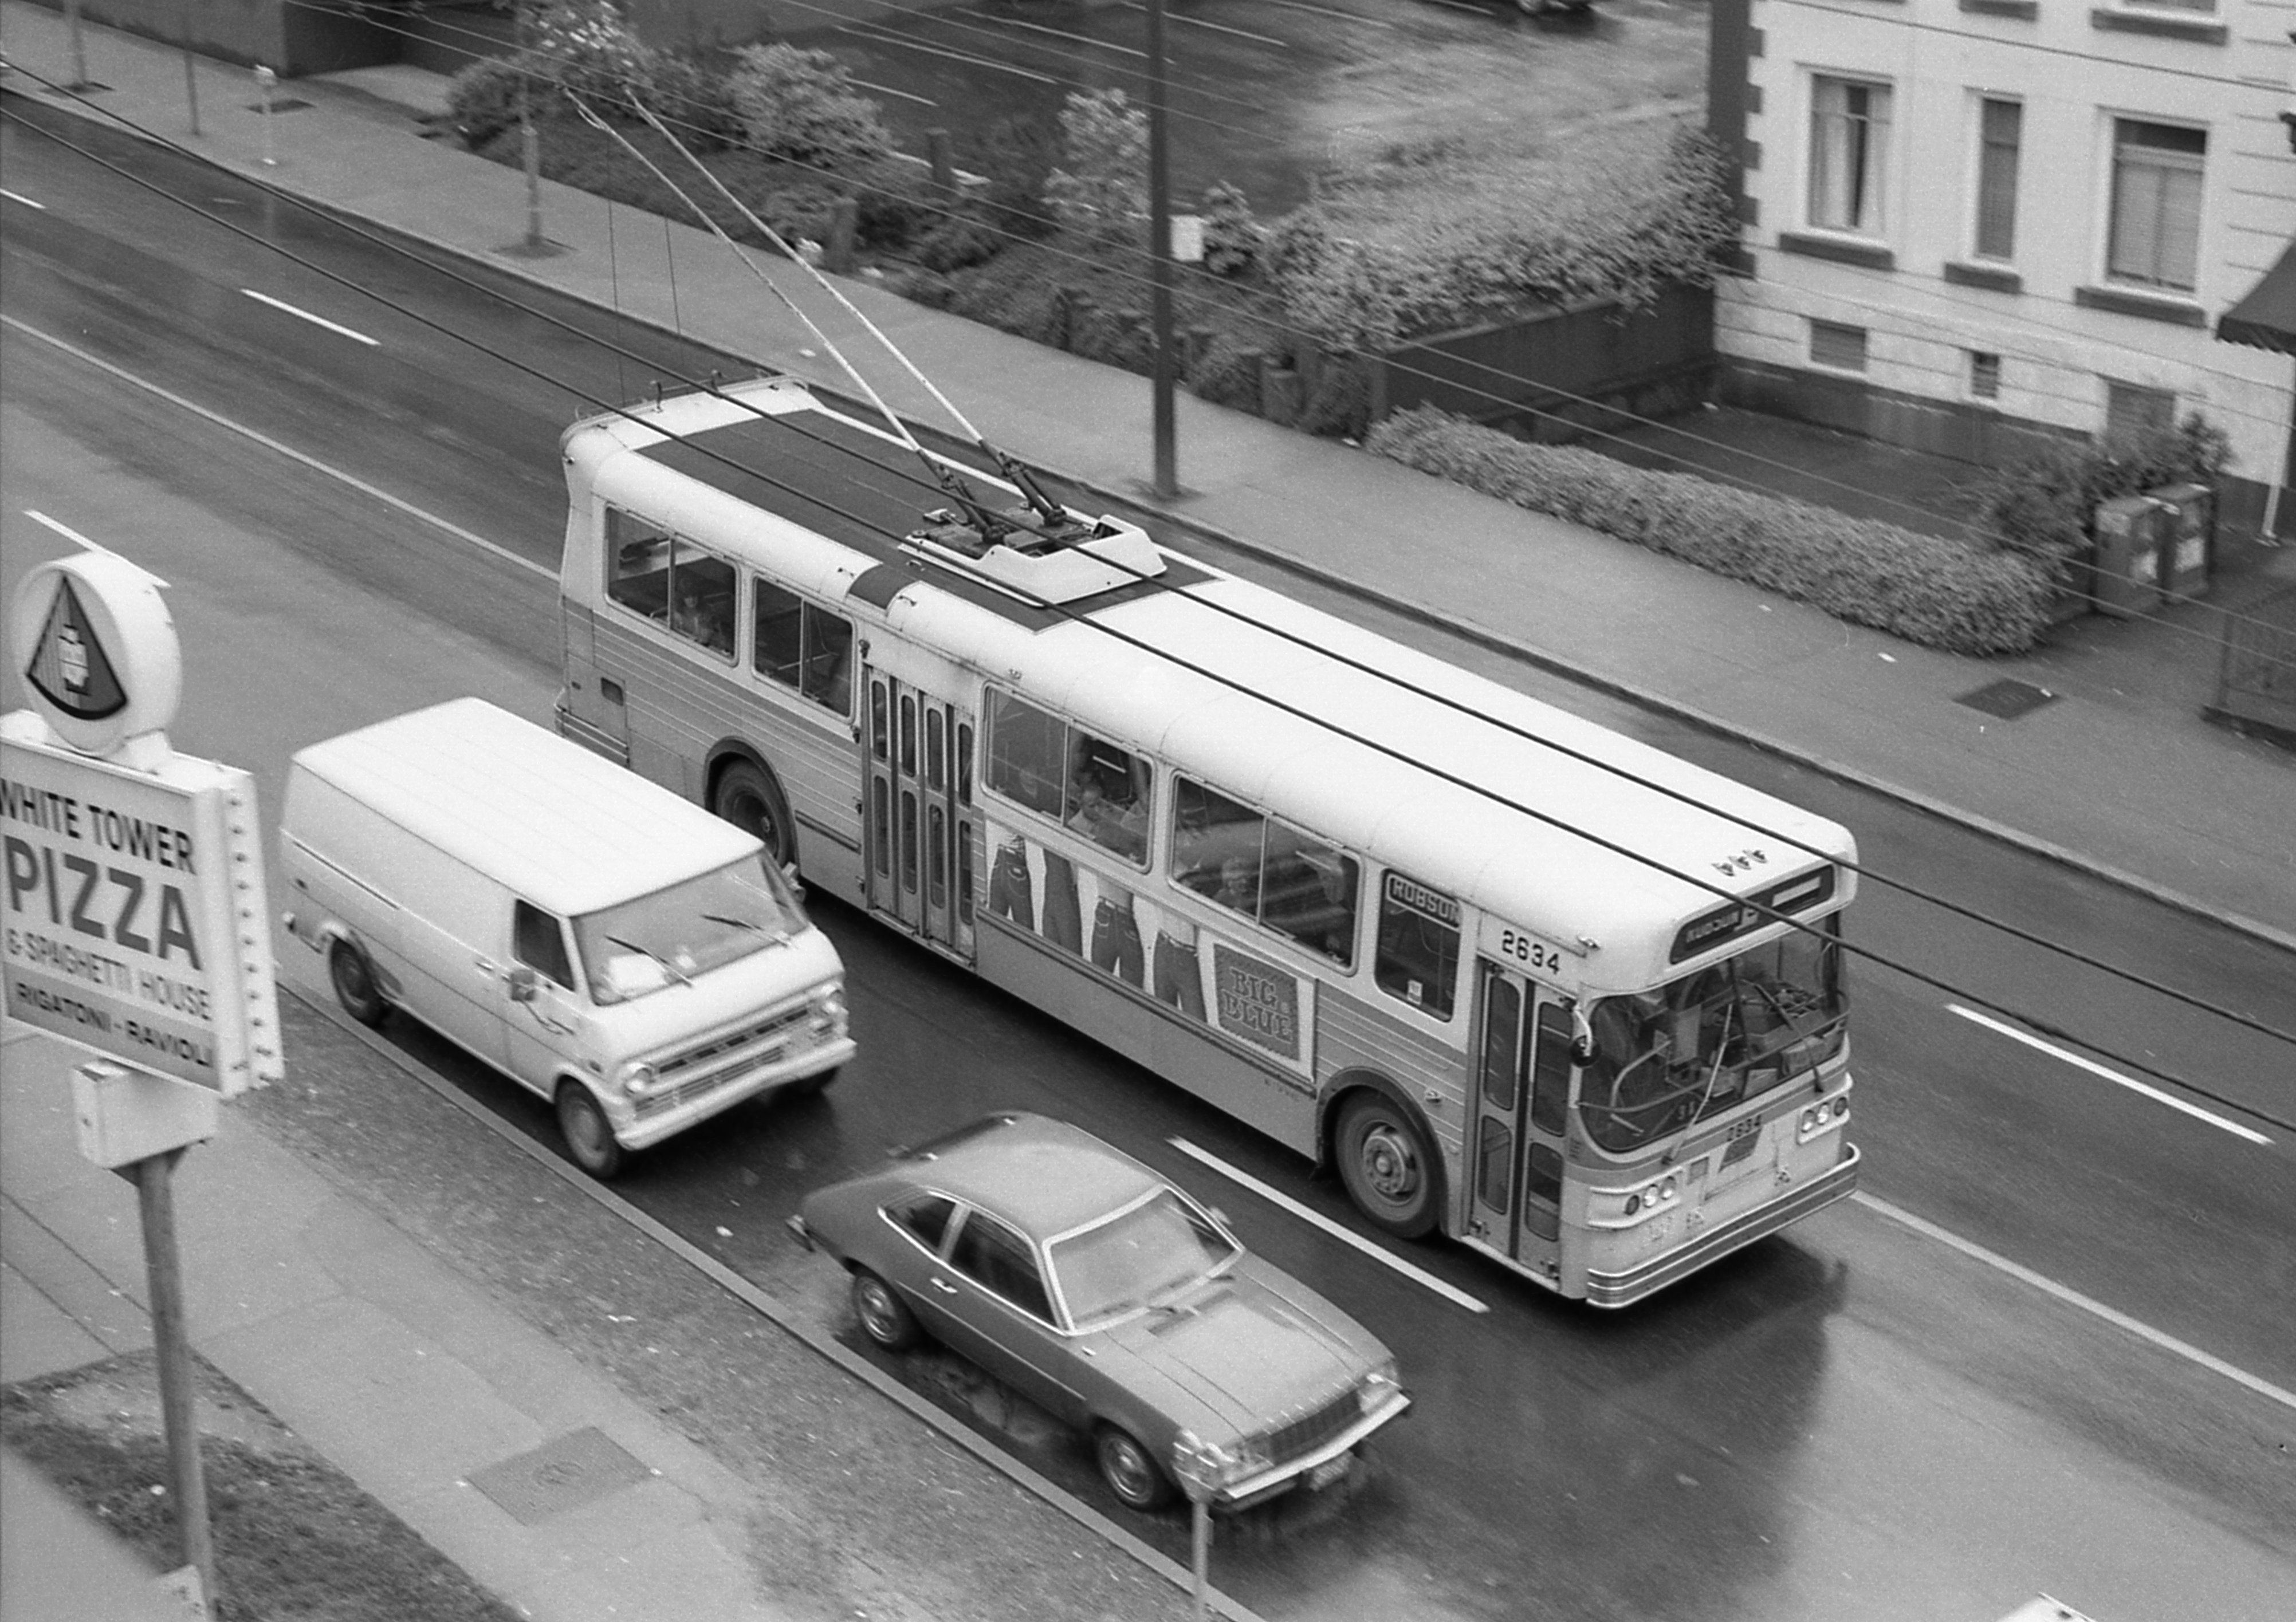 File:Vancouver trolleybus 2634 westbound on Robson Street, late 1970s.jpg